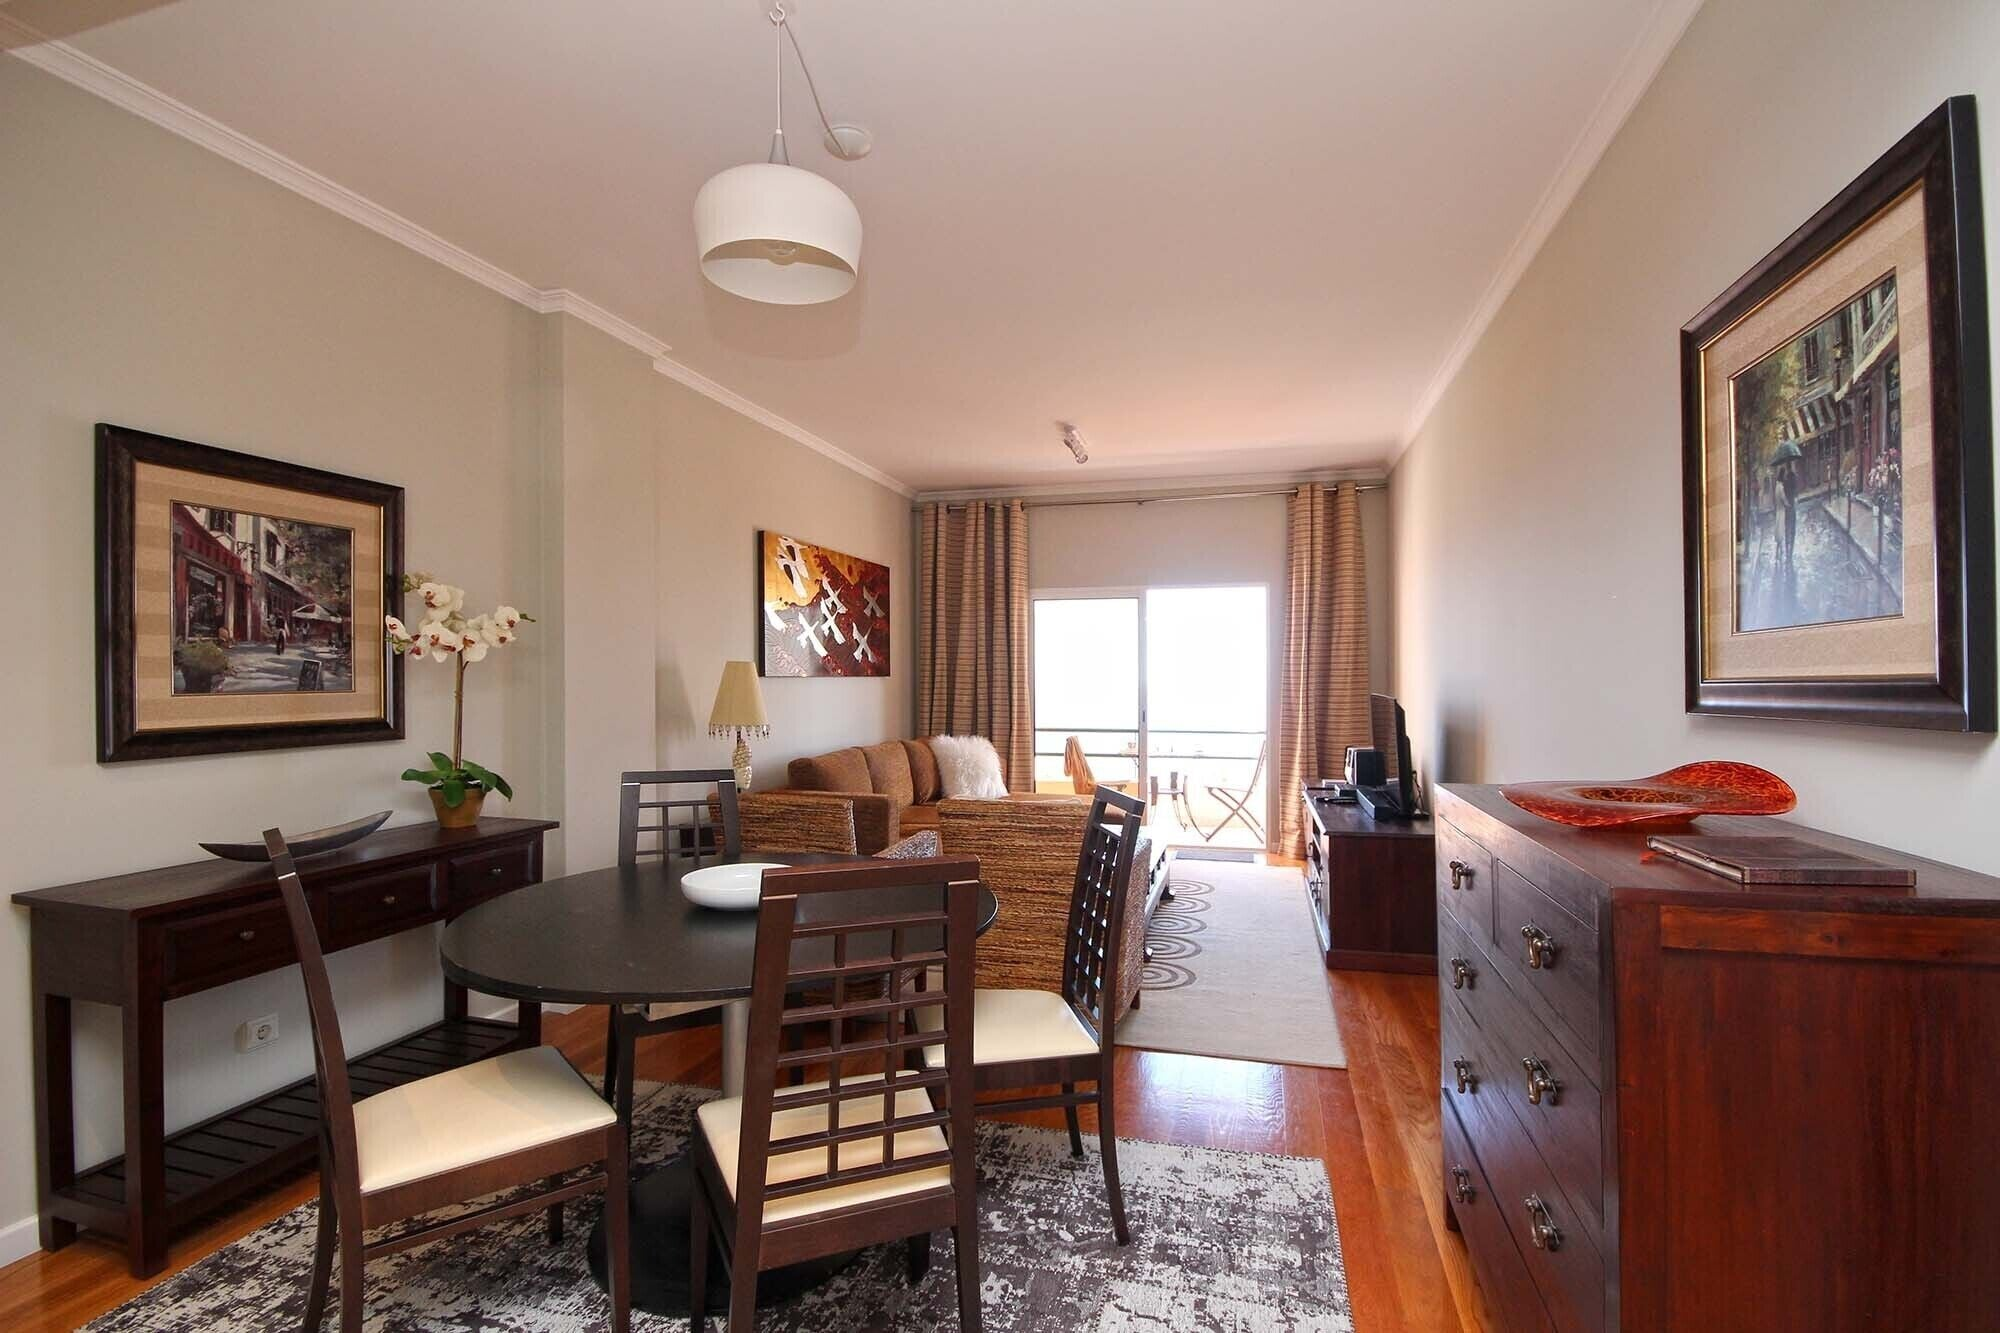 Vale Formoso Apartment, Funchal